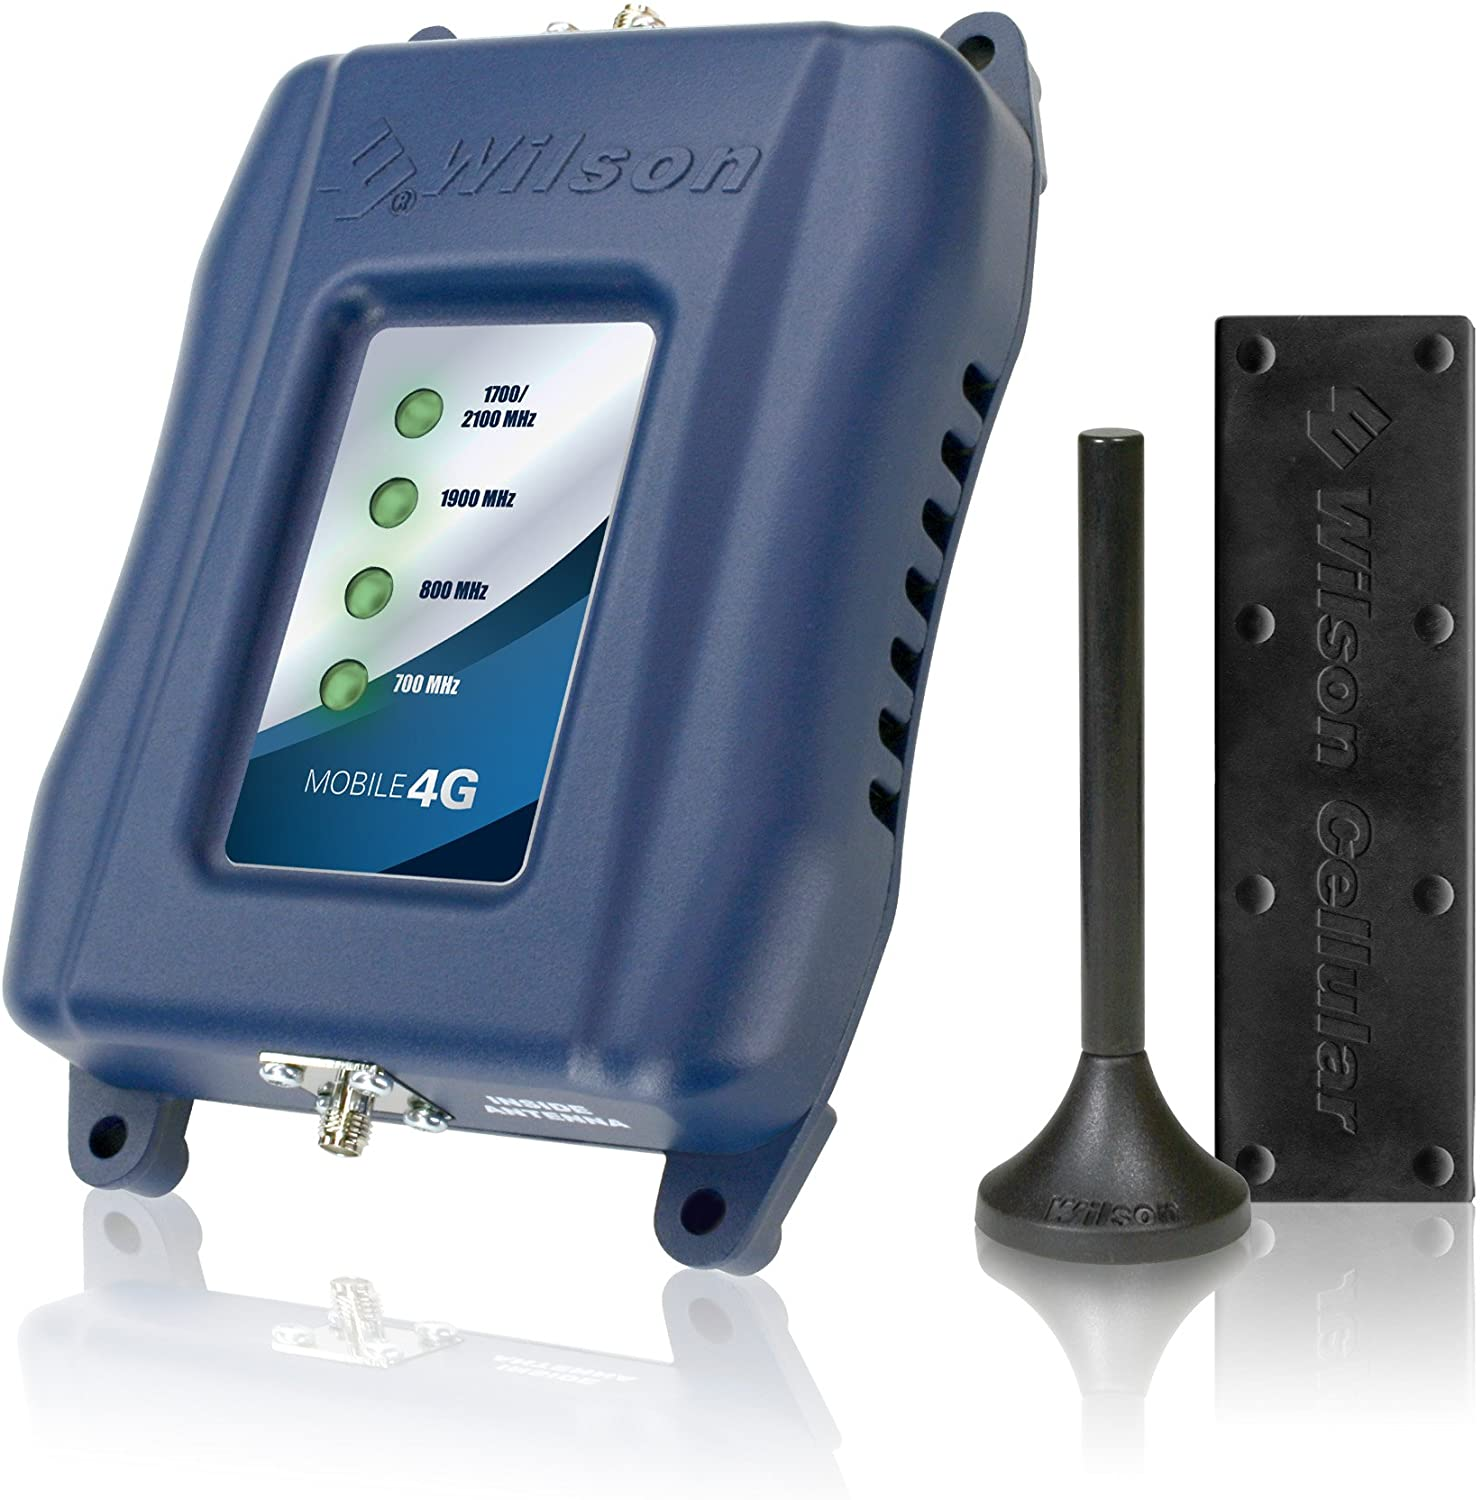 Wilson Electronics Mobile 4G Cell Phone Signal Booster